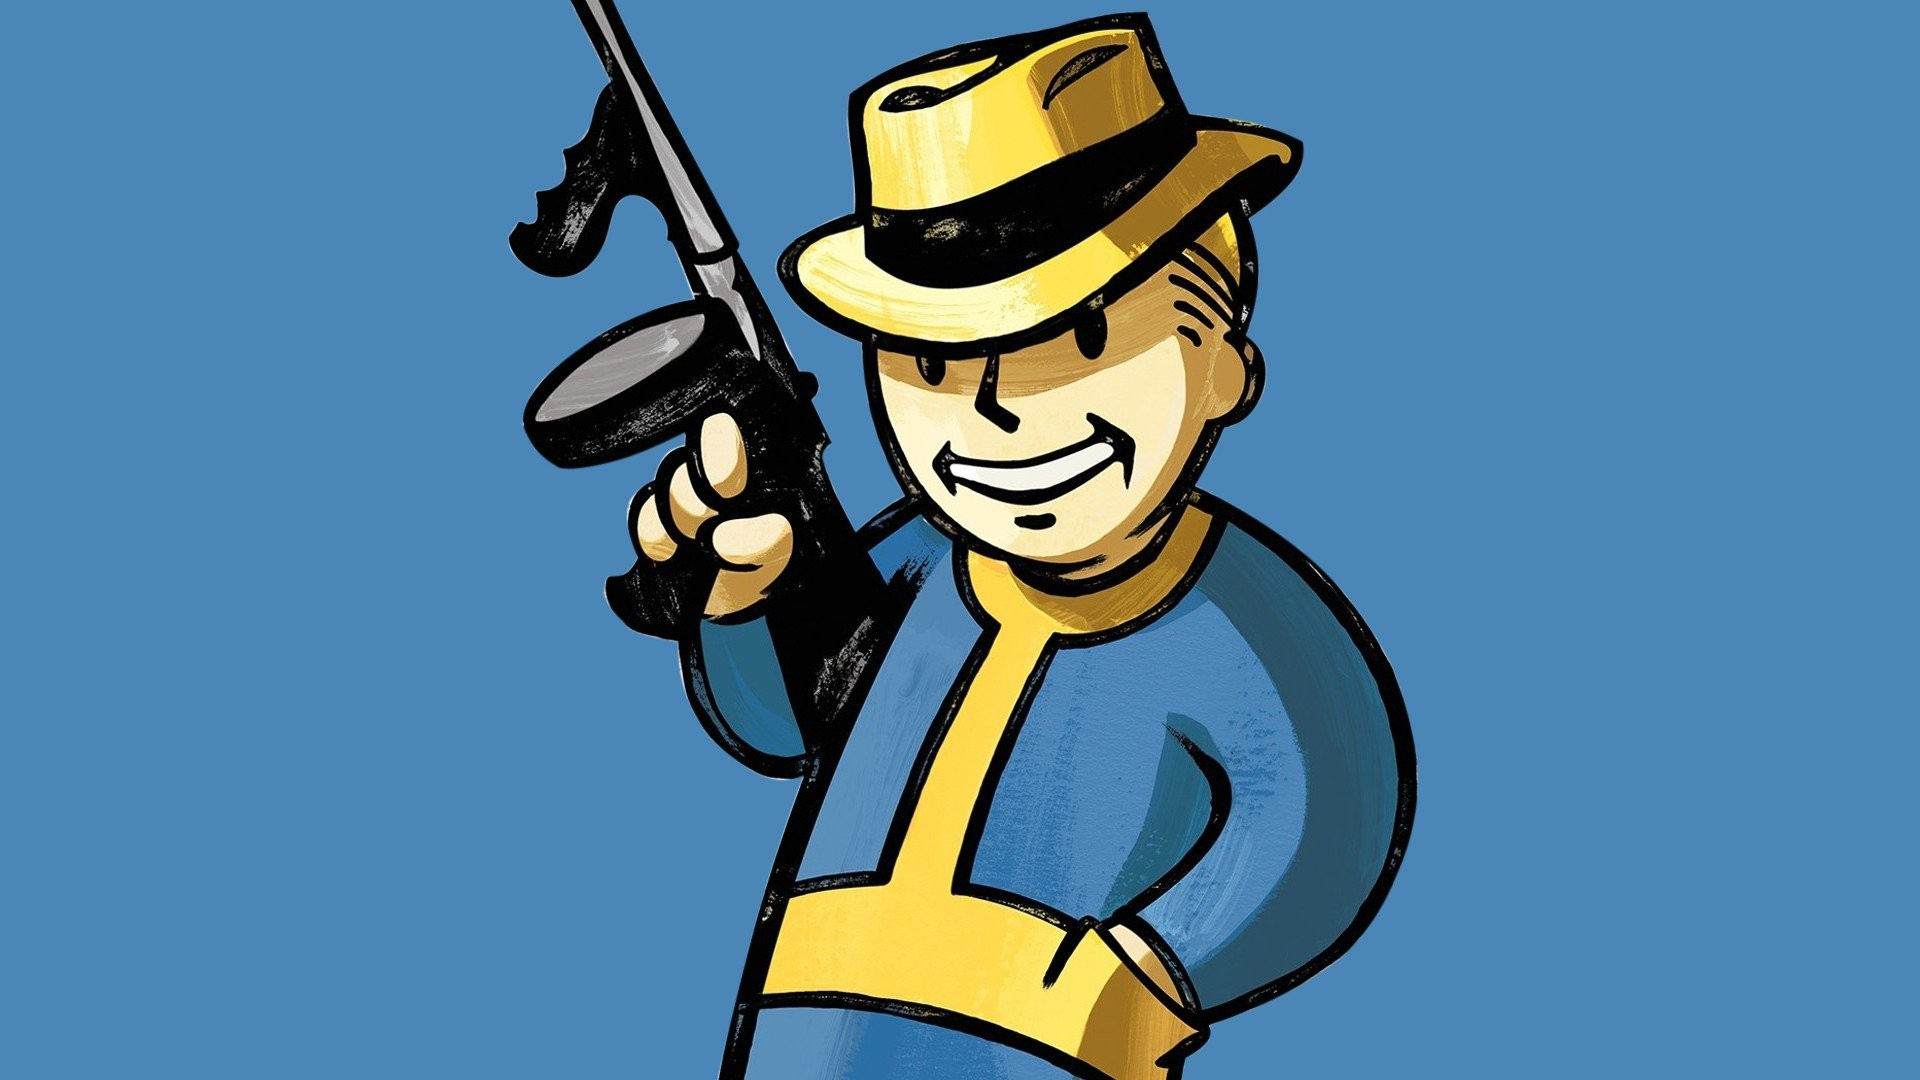 pip boy role playing game wallpaper     240582   WallpaperUP .